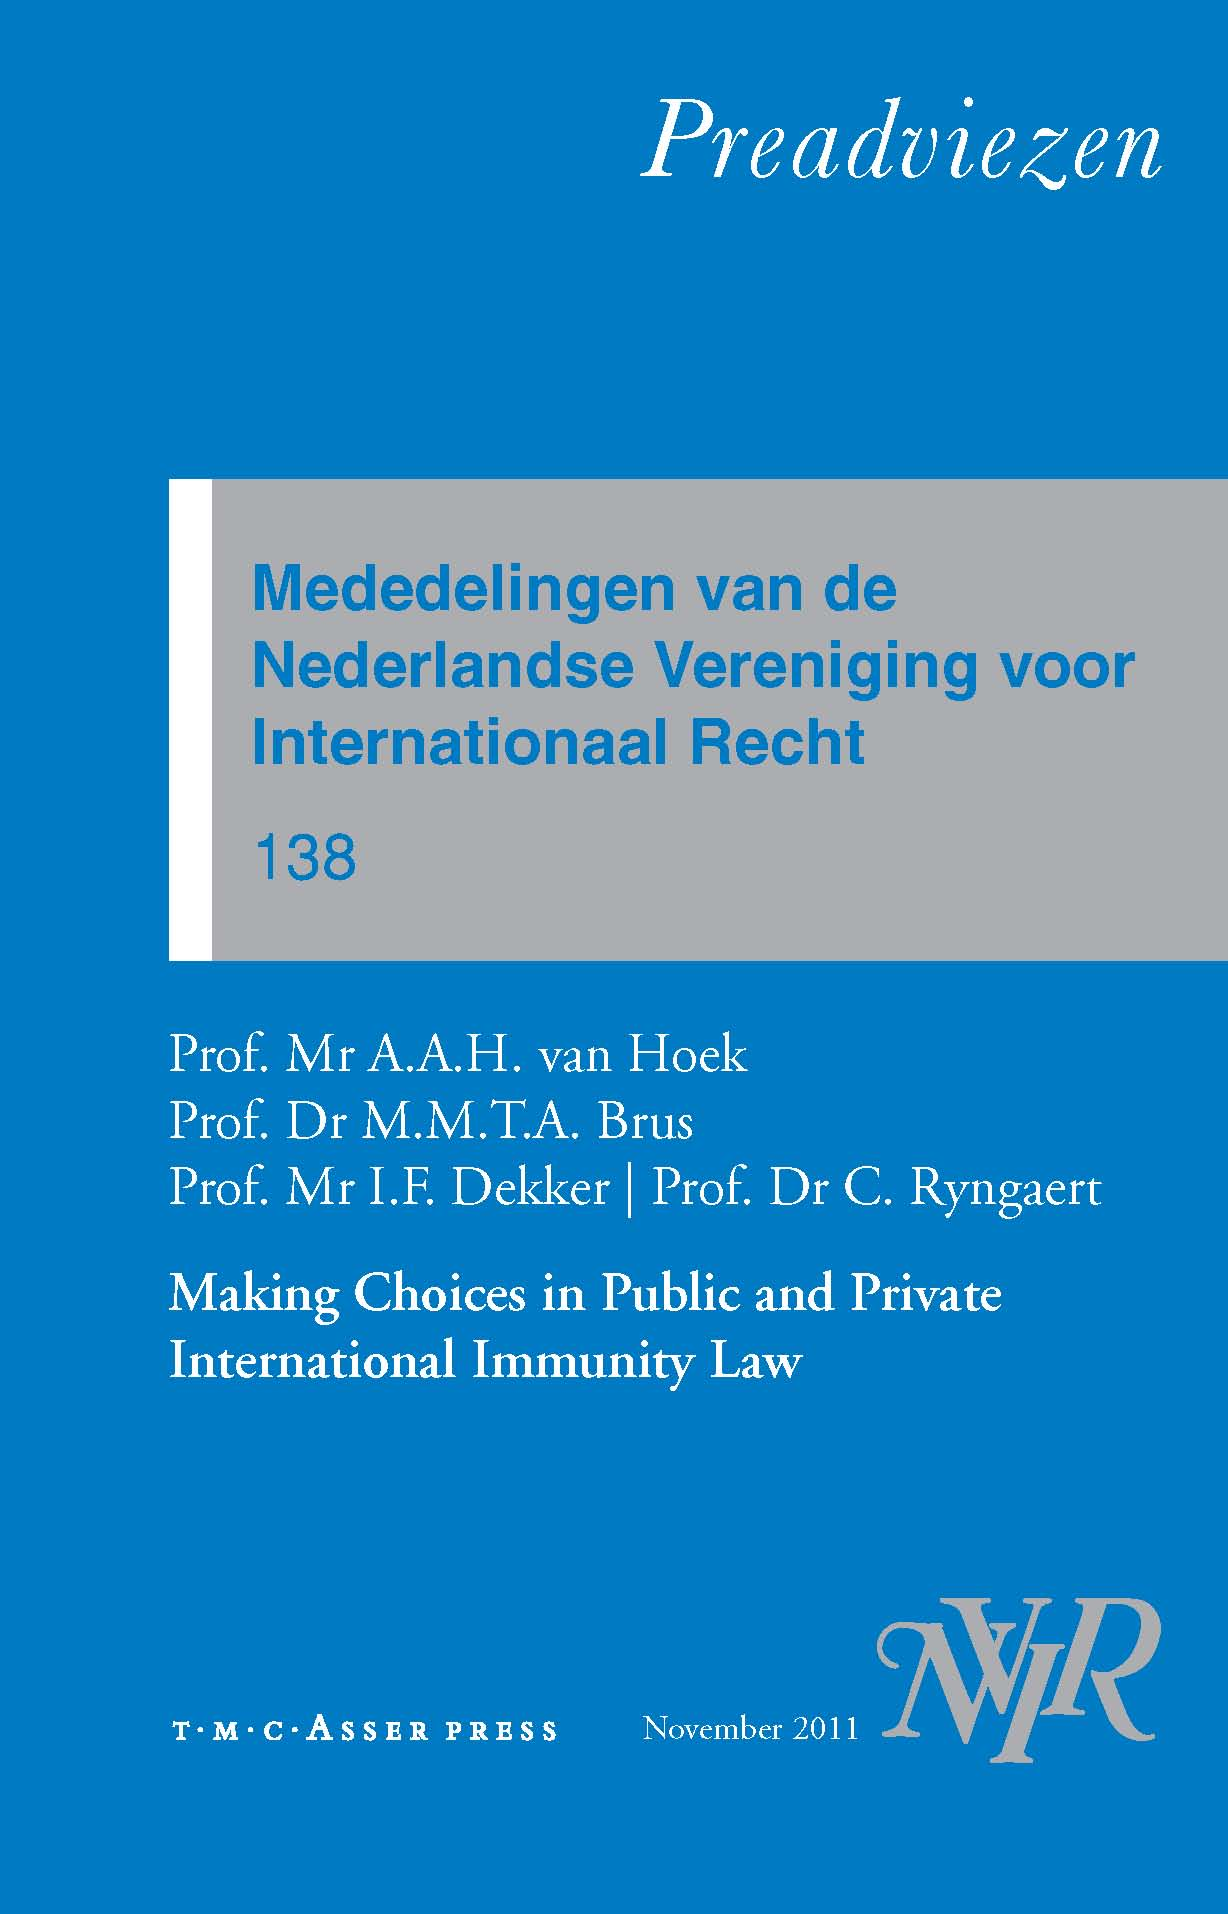 Mededelingen van de Nederlandse Vereniging voor Internationaal Recht – Nr. 138 – Making Choices in Public and Private International Immunity Law